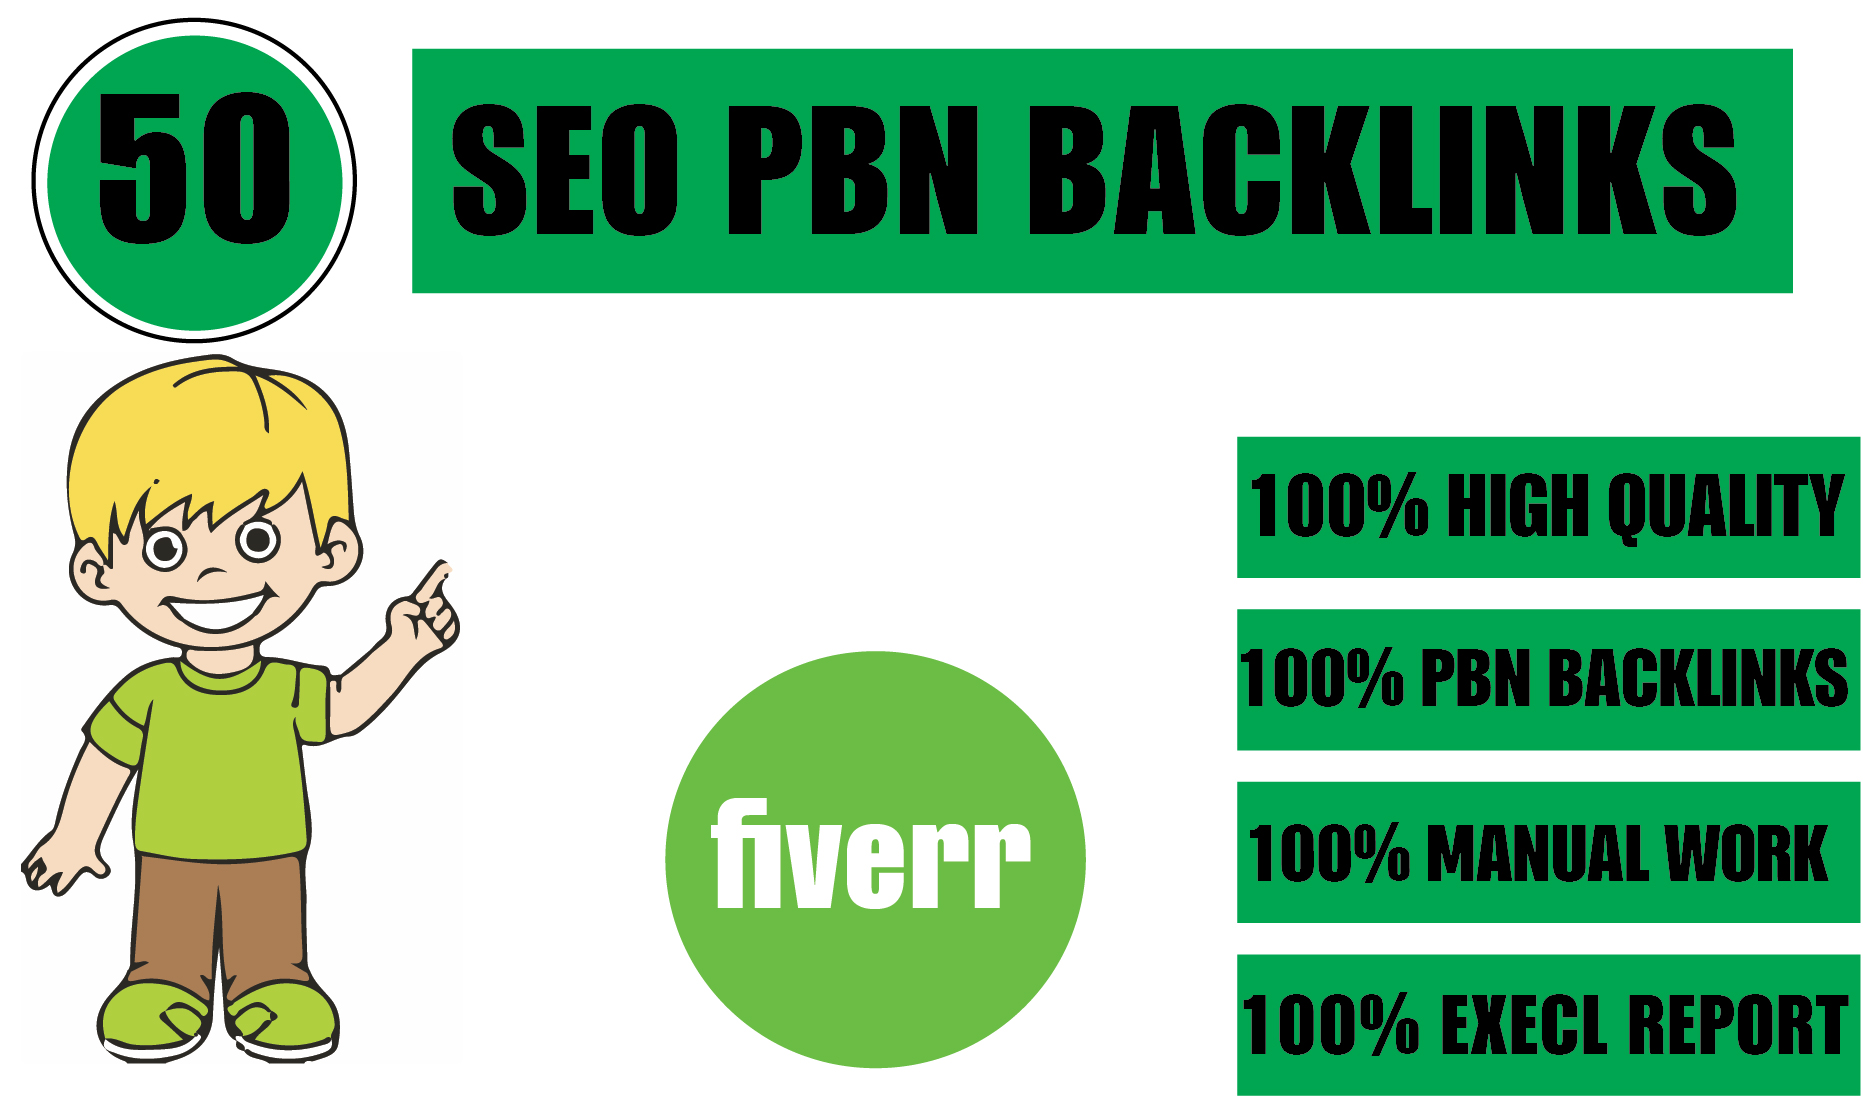 I will provide 50 SEO PBN high quality backlinks